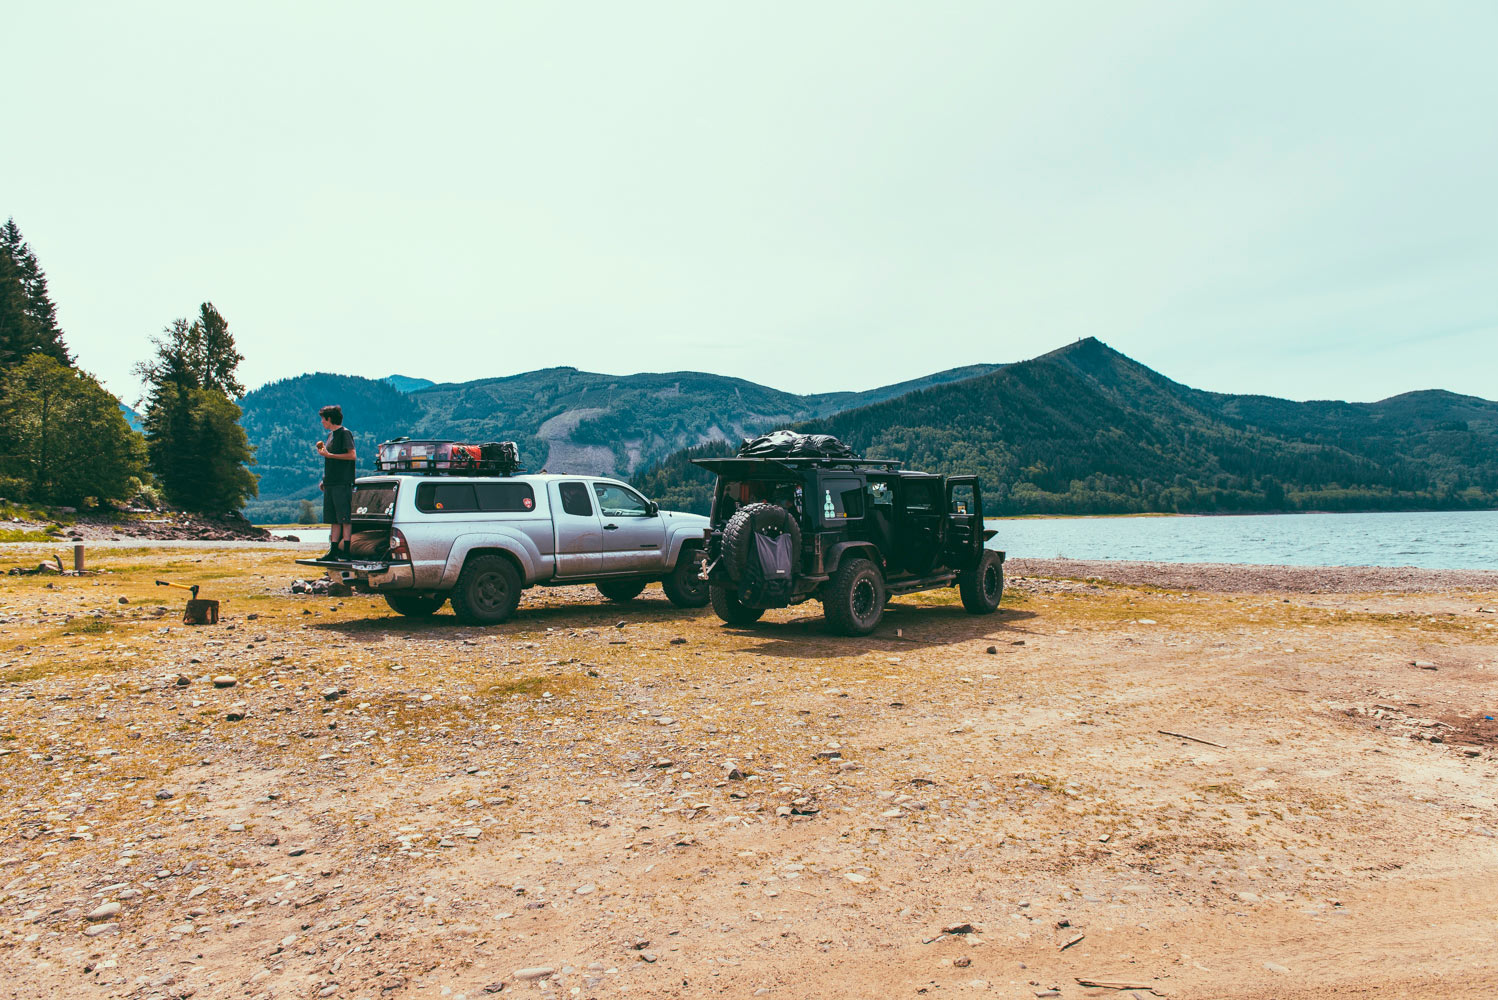 Jeep and Toyota by the water with mountain views